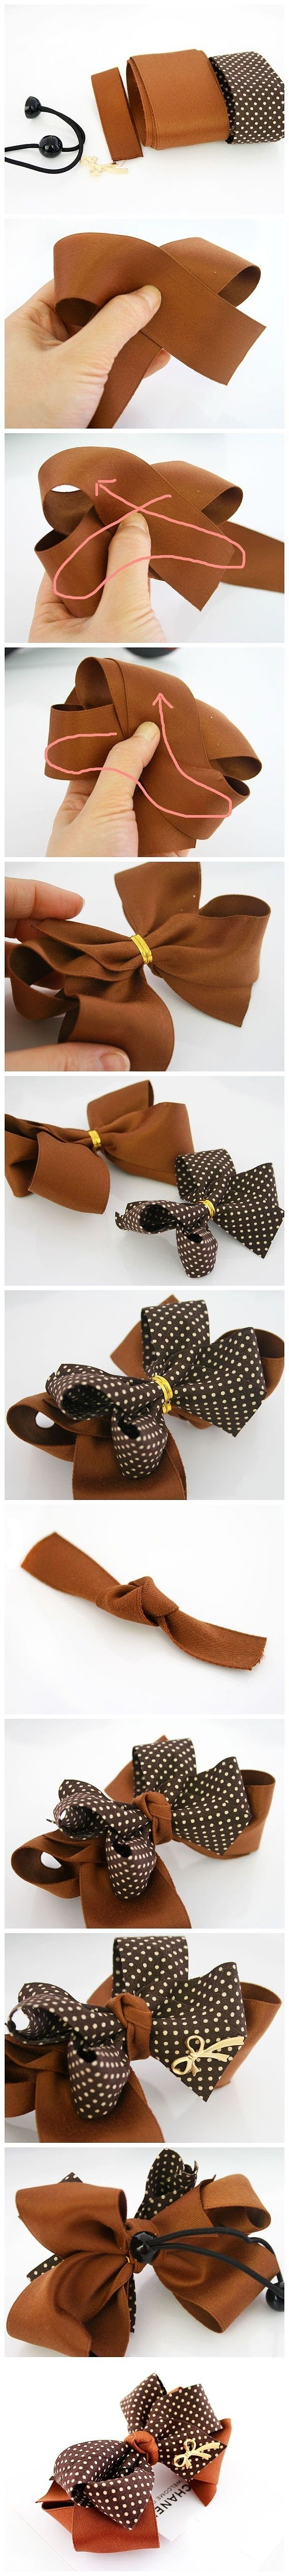 DIY Chanel Inspired Bow Pictures, Photos, and Images for Facebook, Tumblr, Pinterest, and Twitter